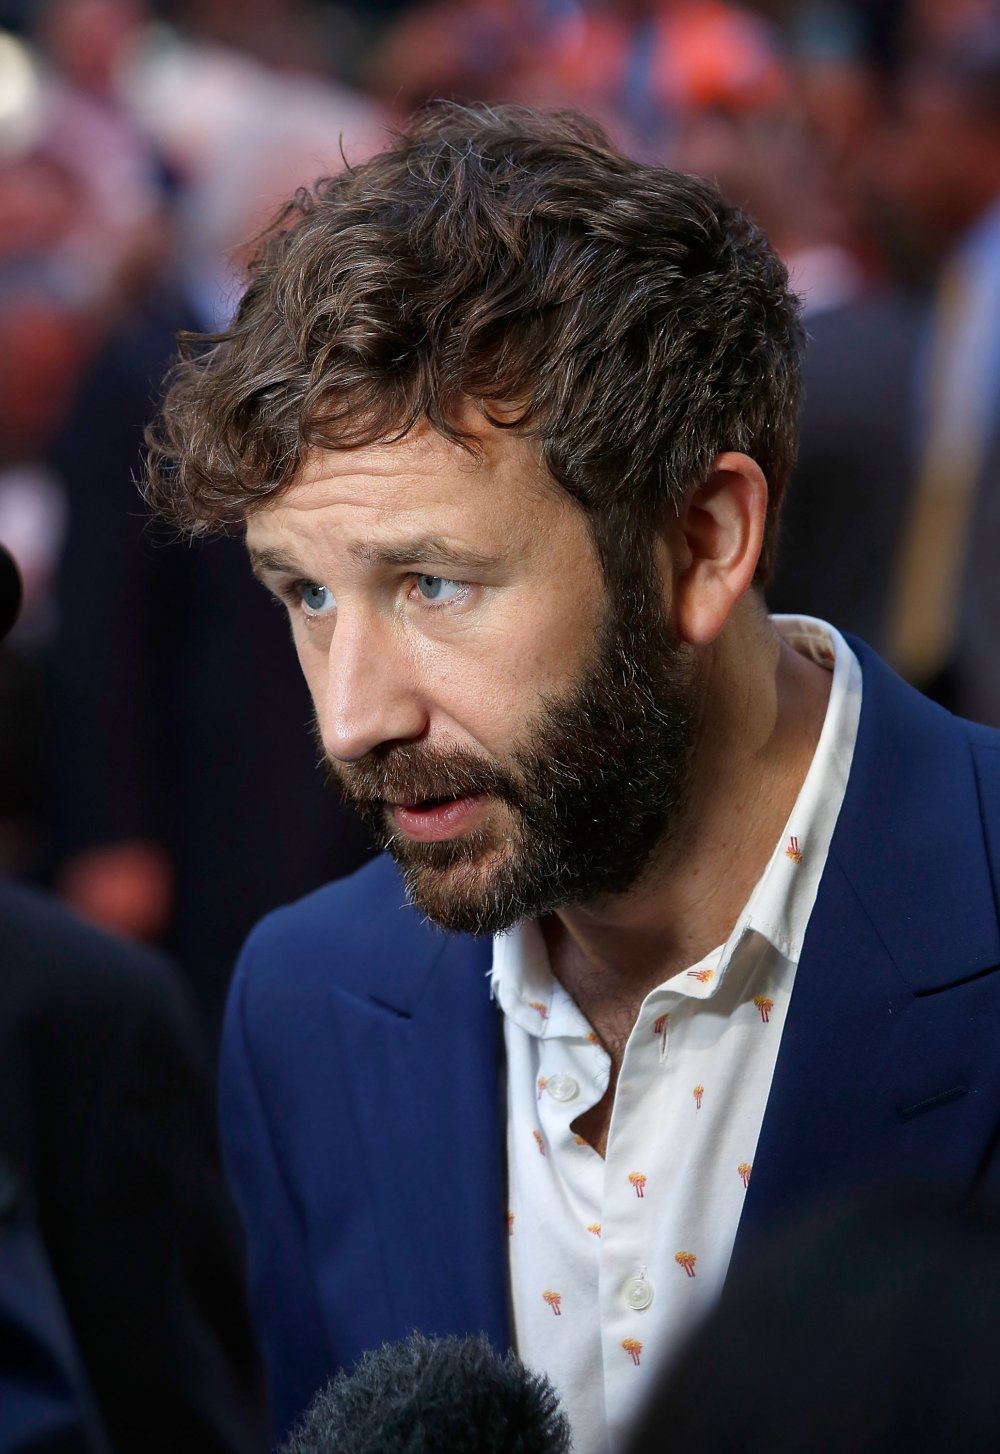 Chris O'Dowd attends the The Program screening, during the BFI London Film Festival